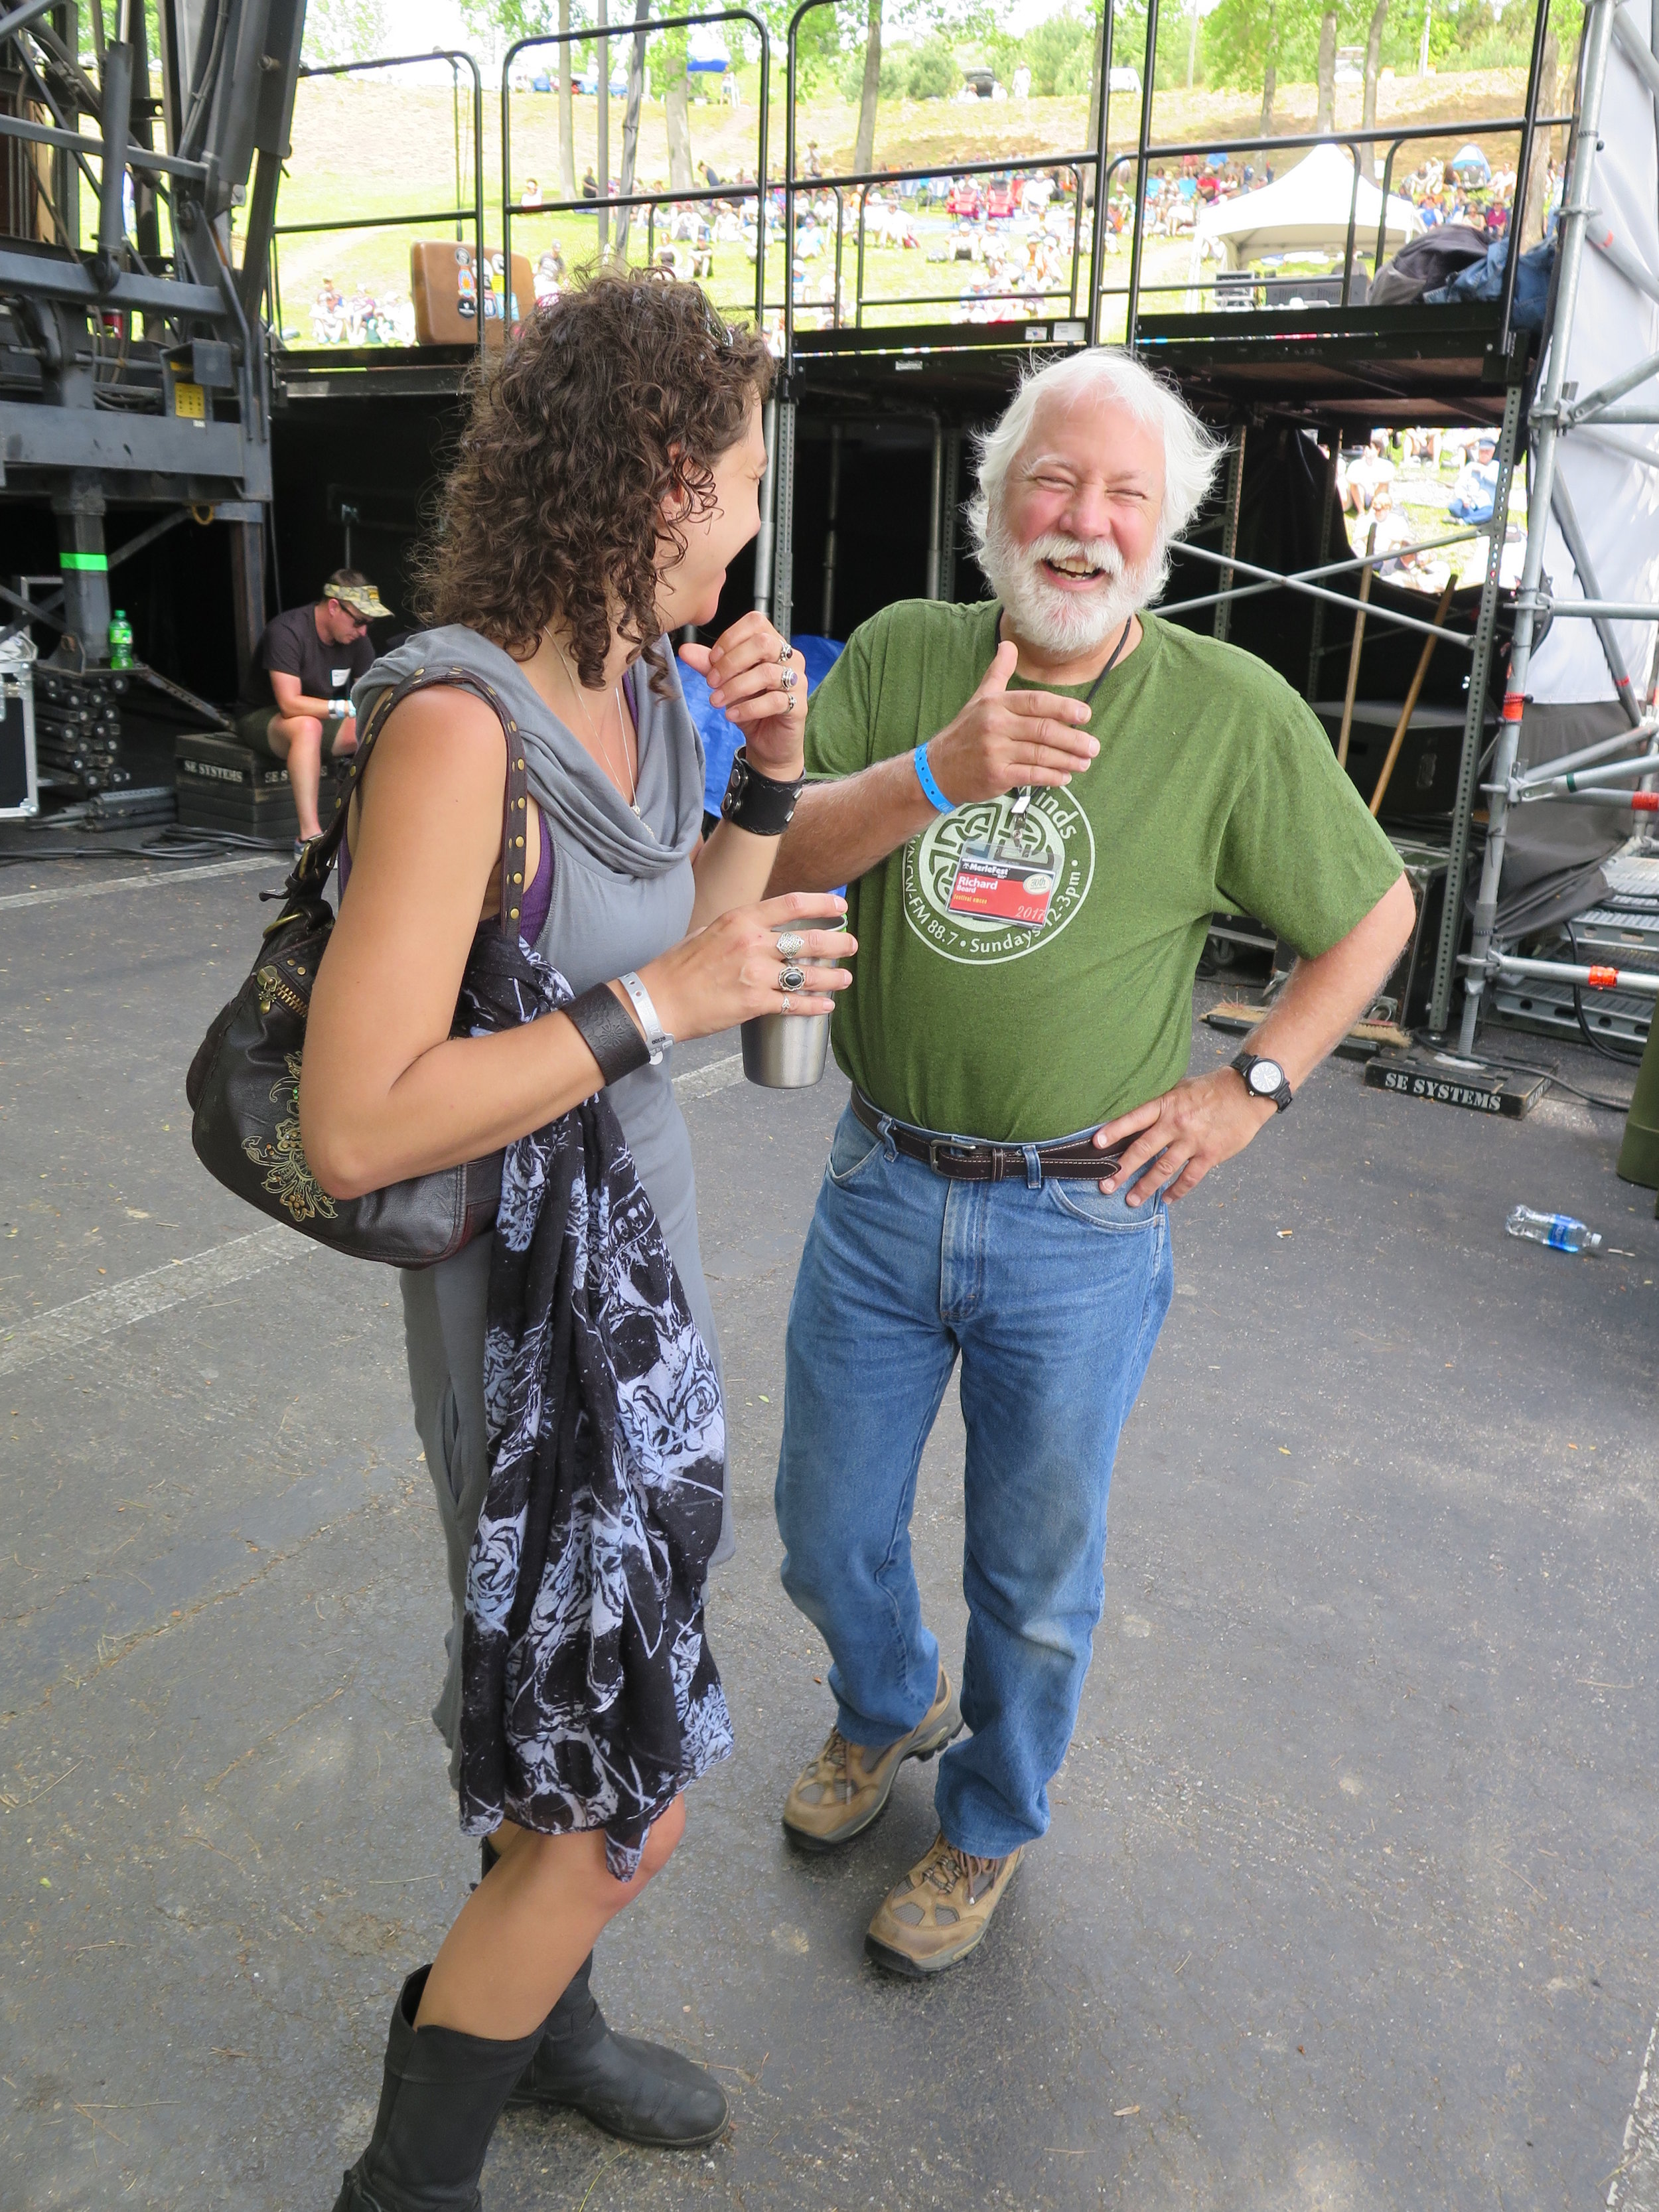 Erin Scholze of   Dreamspider Publicity   and WNCW's Richard Beard behind Hillside Stage at MerleFest